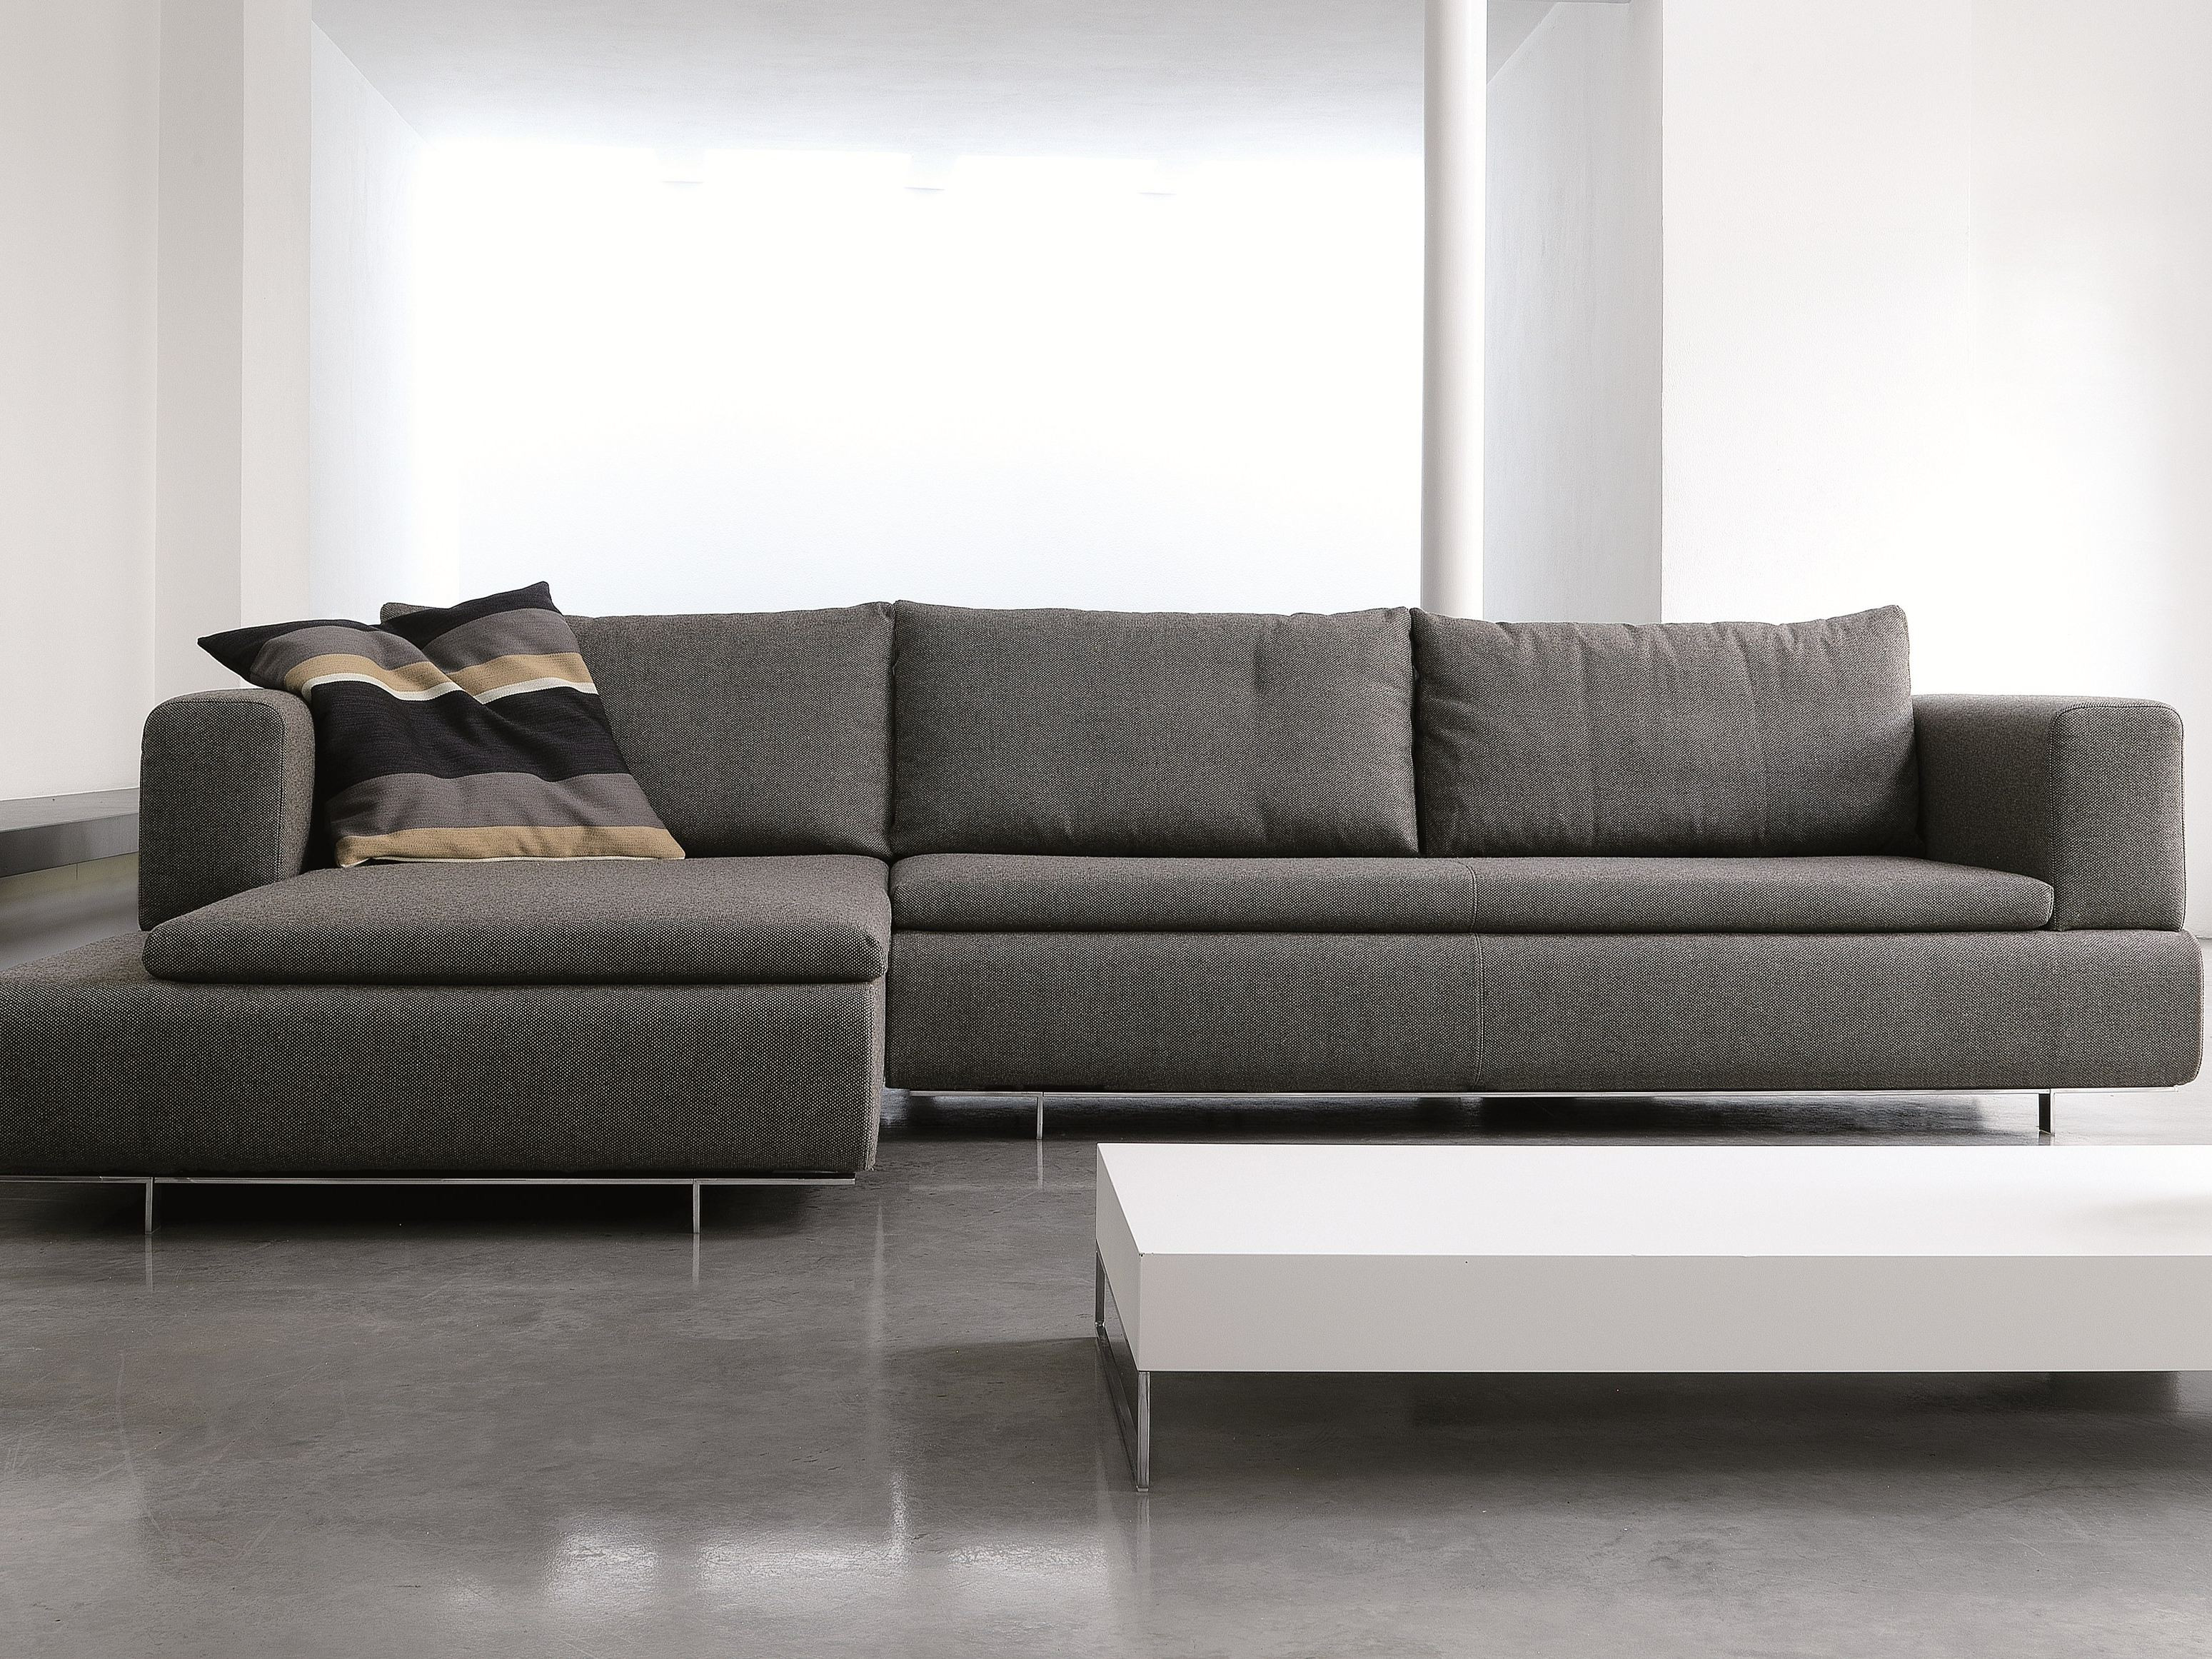 Sofas 5 Plazas Chaise Longue Perfecto Chaise Longue sofa Modern Chaise Longue sofas Quality From Of Sofas 5 Plazas Chaise Longue Arriba sofás 4 Plazas Con Chaise Longue